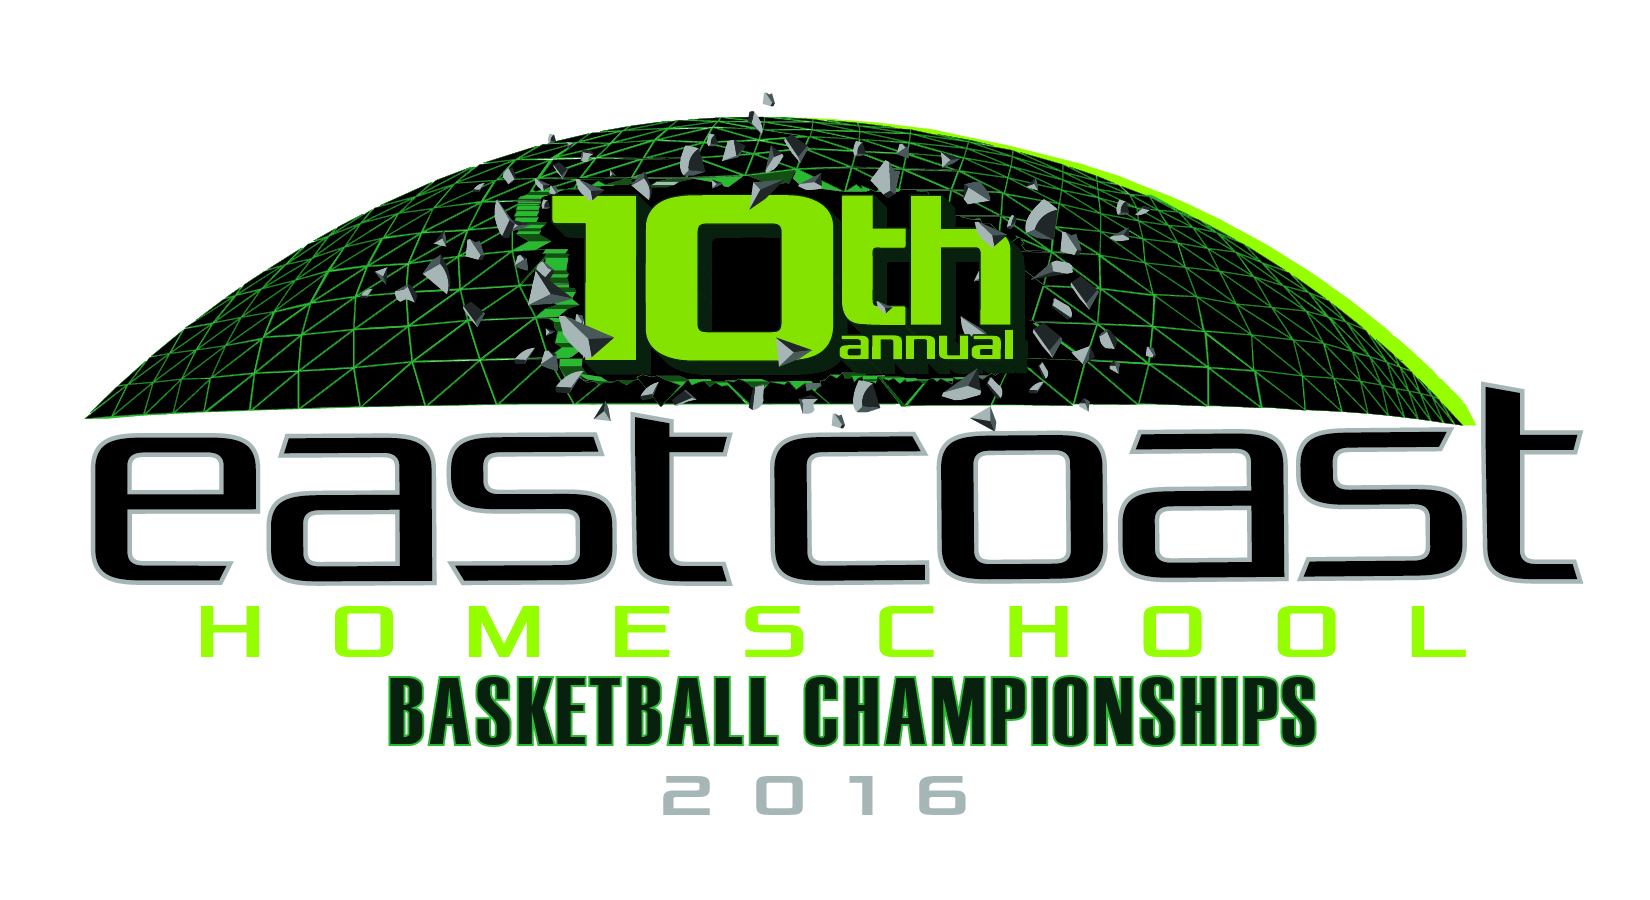 Our Annual East Coast Homeschool Basketball Championships